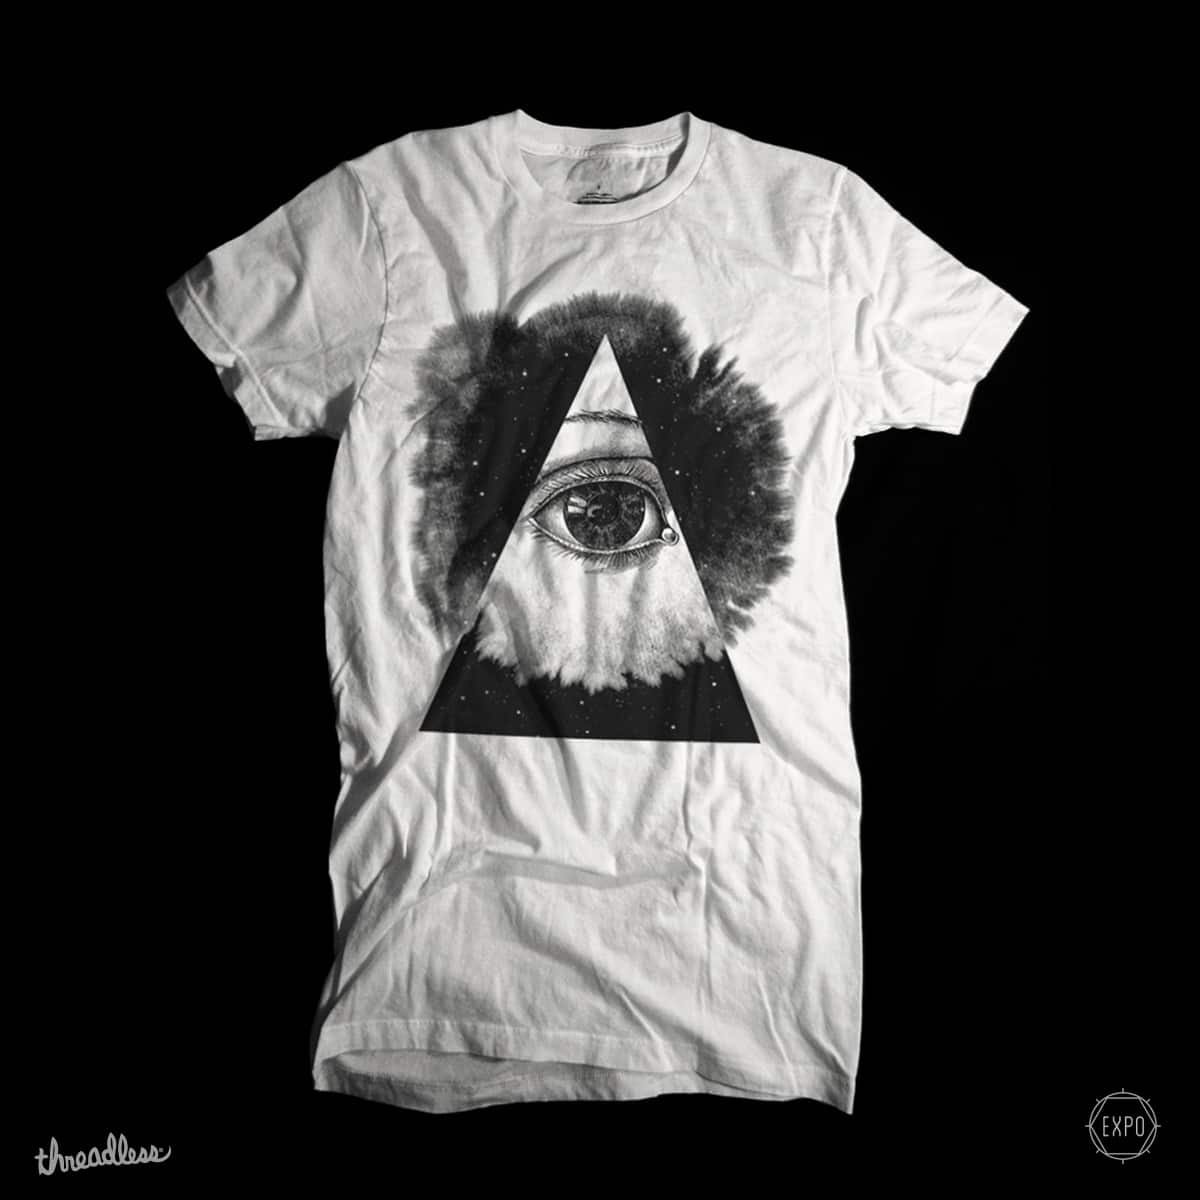 Eye In The Sky by expo on Threadless